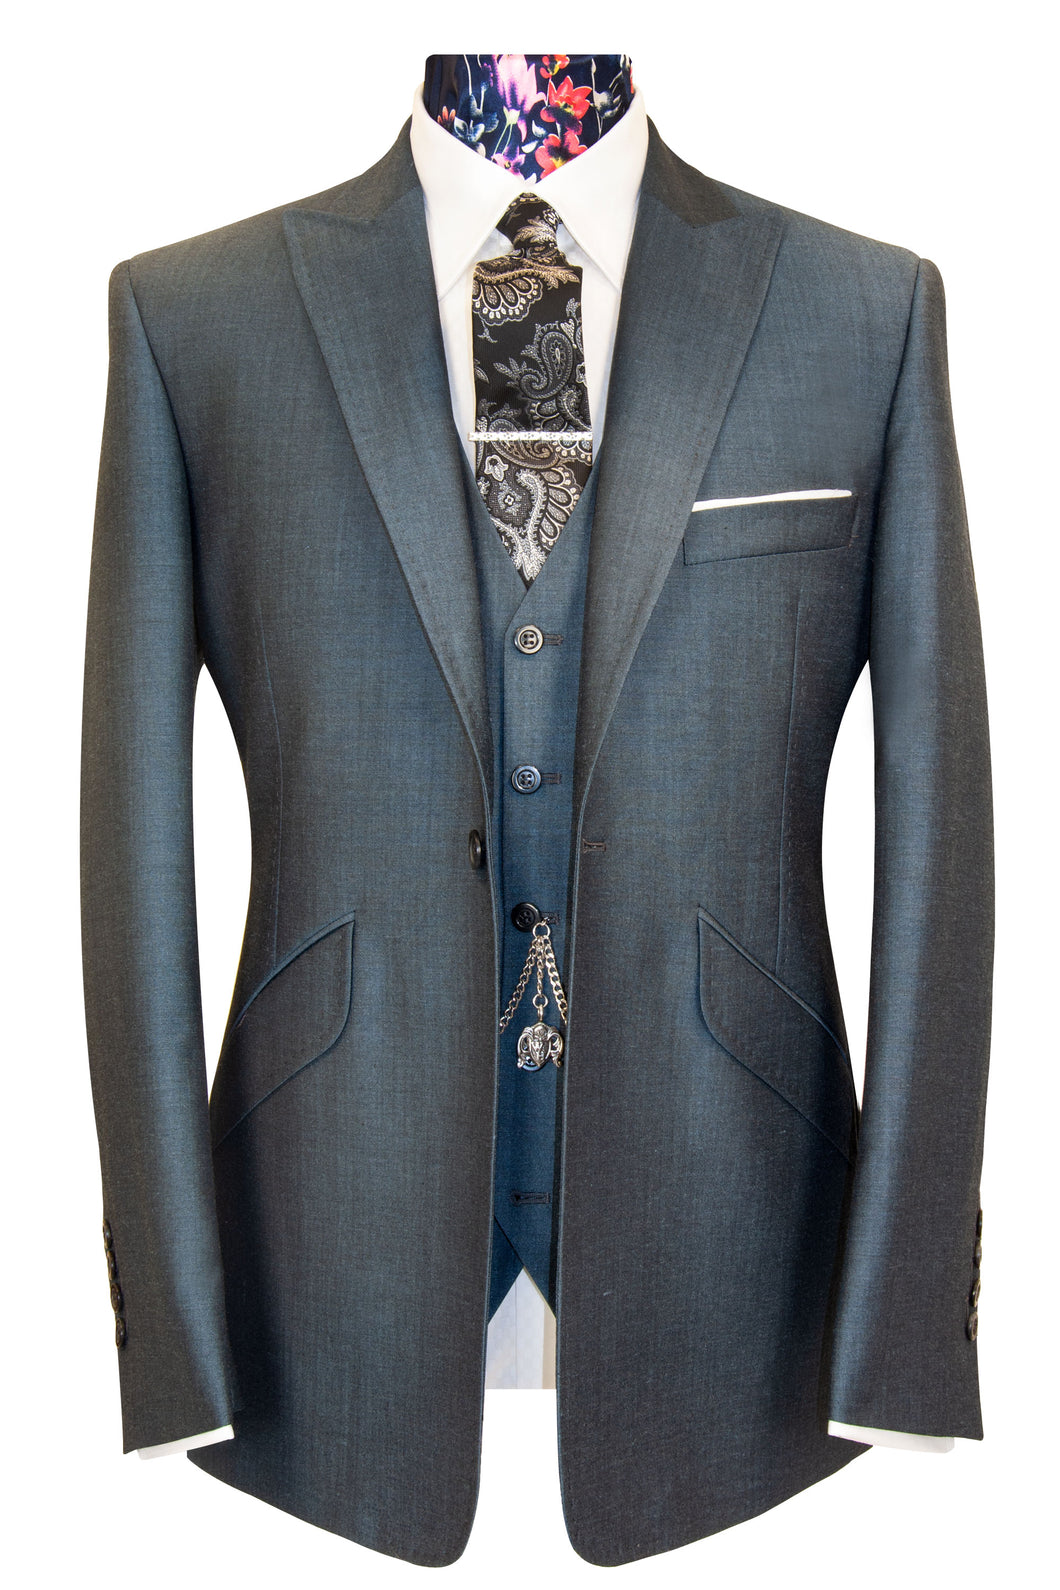 The Alvarez Slate Grey Shot Suit